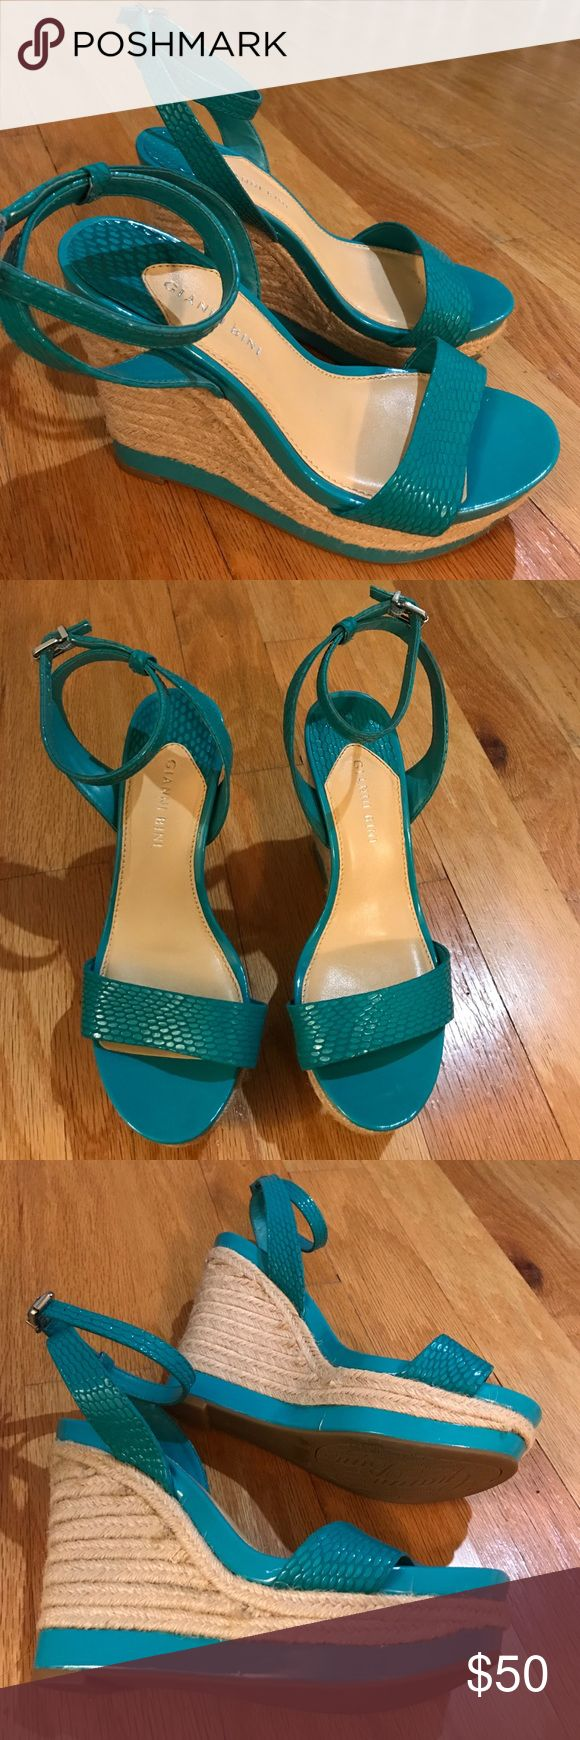 Gianni Bini Teal Wedge Sandals Super cute wedge sandals. Teal color and wrap around the ankle. Only been worn twice and in good condition. Gianni Bini Shoes Wedges